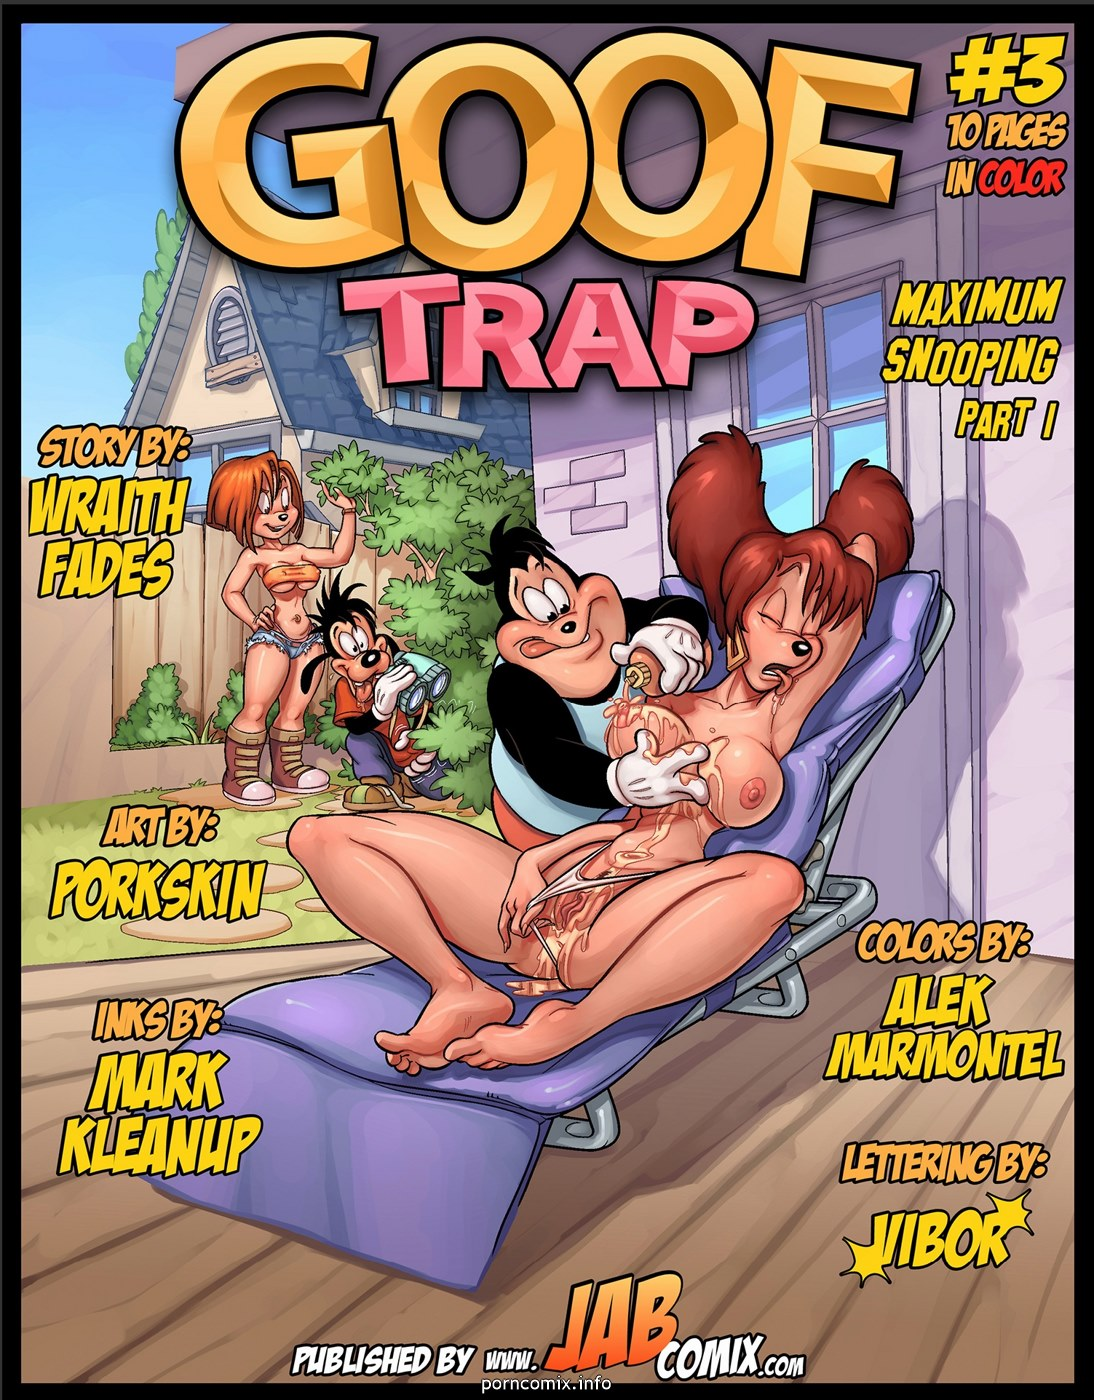 Porn Comics - Goof Trap 3 – Maximum Snooping porn comics 8 muses